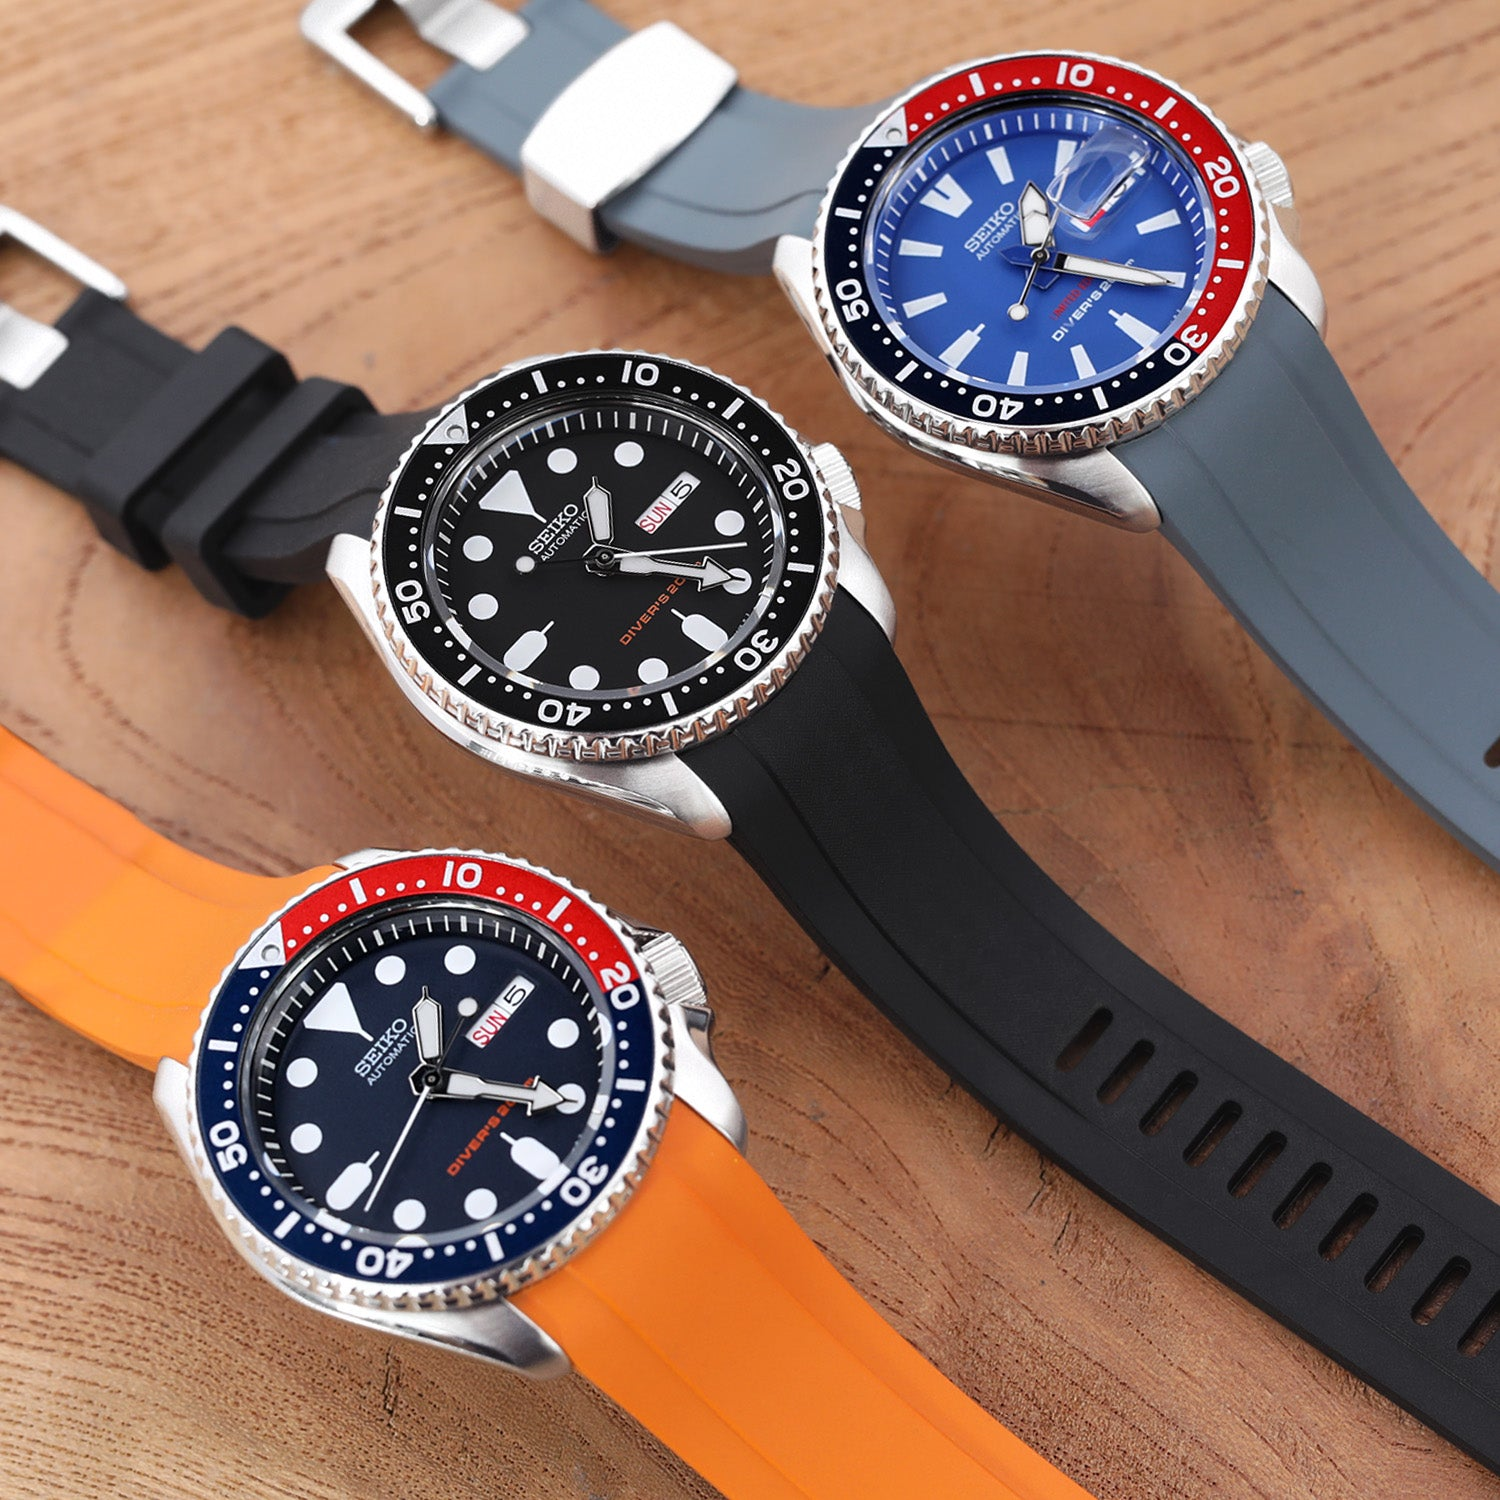 Seiko SKX curved end rubber strap by Crafter Blue   Strapcode watch bands